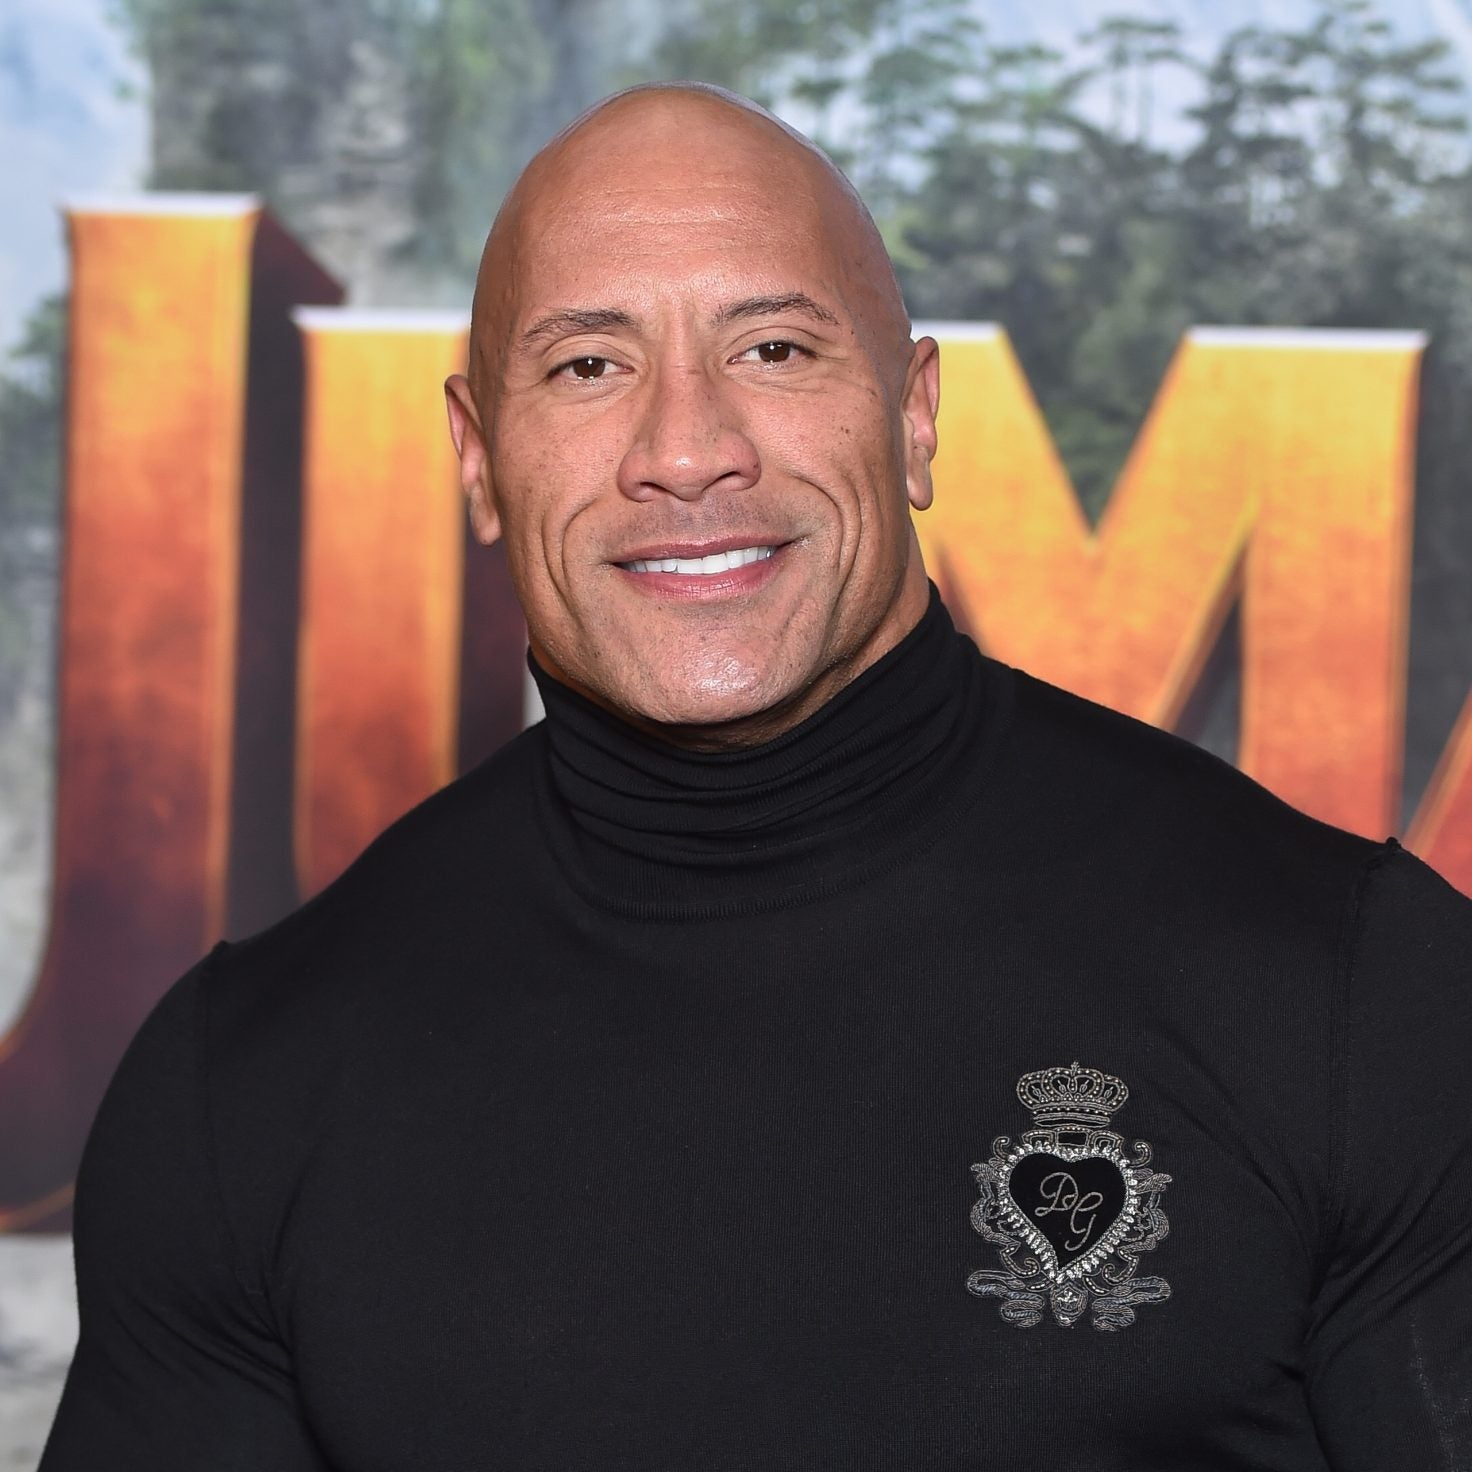 Dwayne 'The Rock' Johnson Breaks Silence On Father's Death: 'You Were Ripped Away'